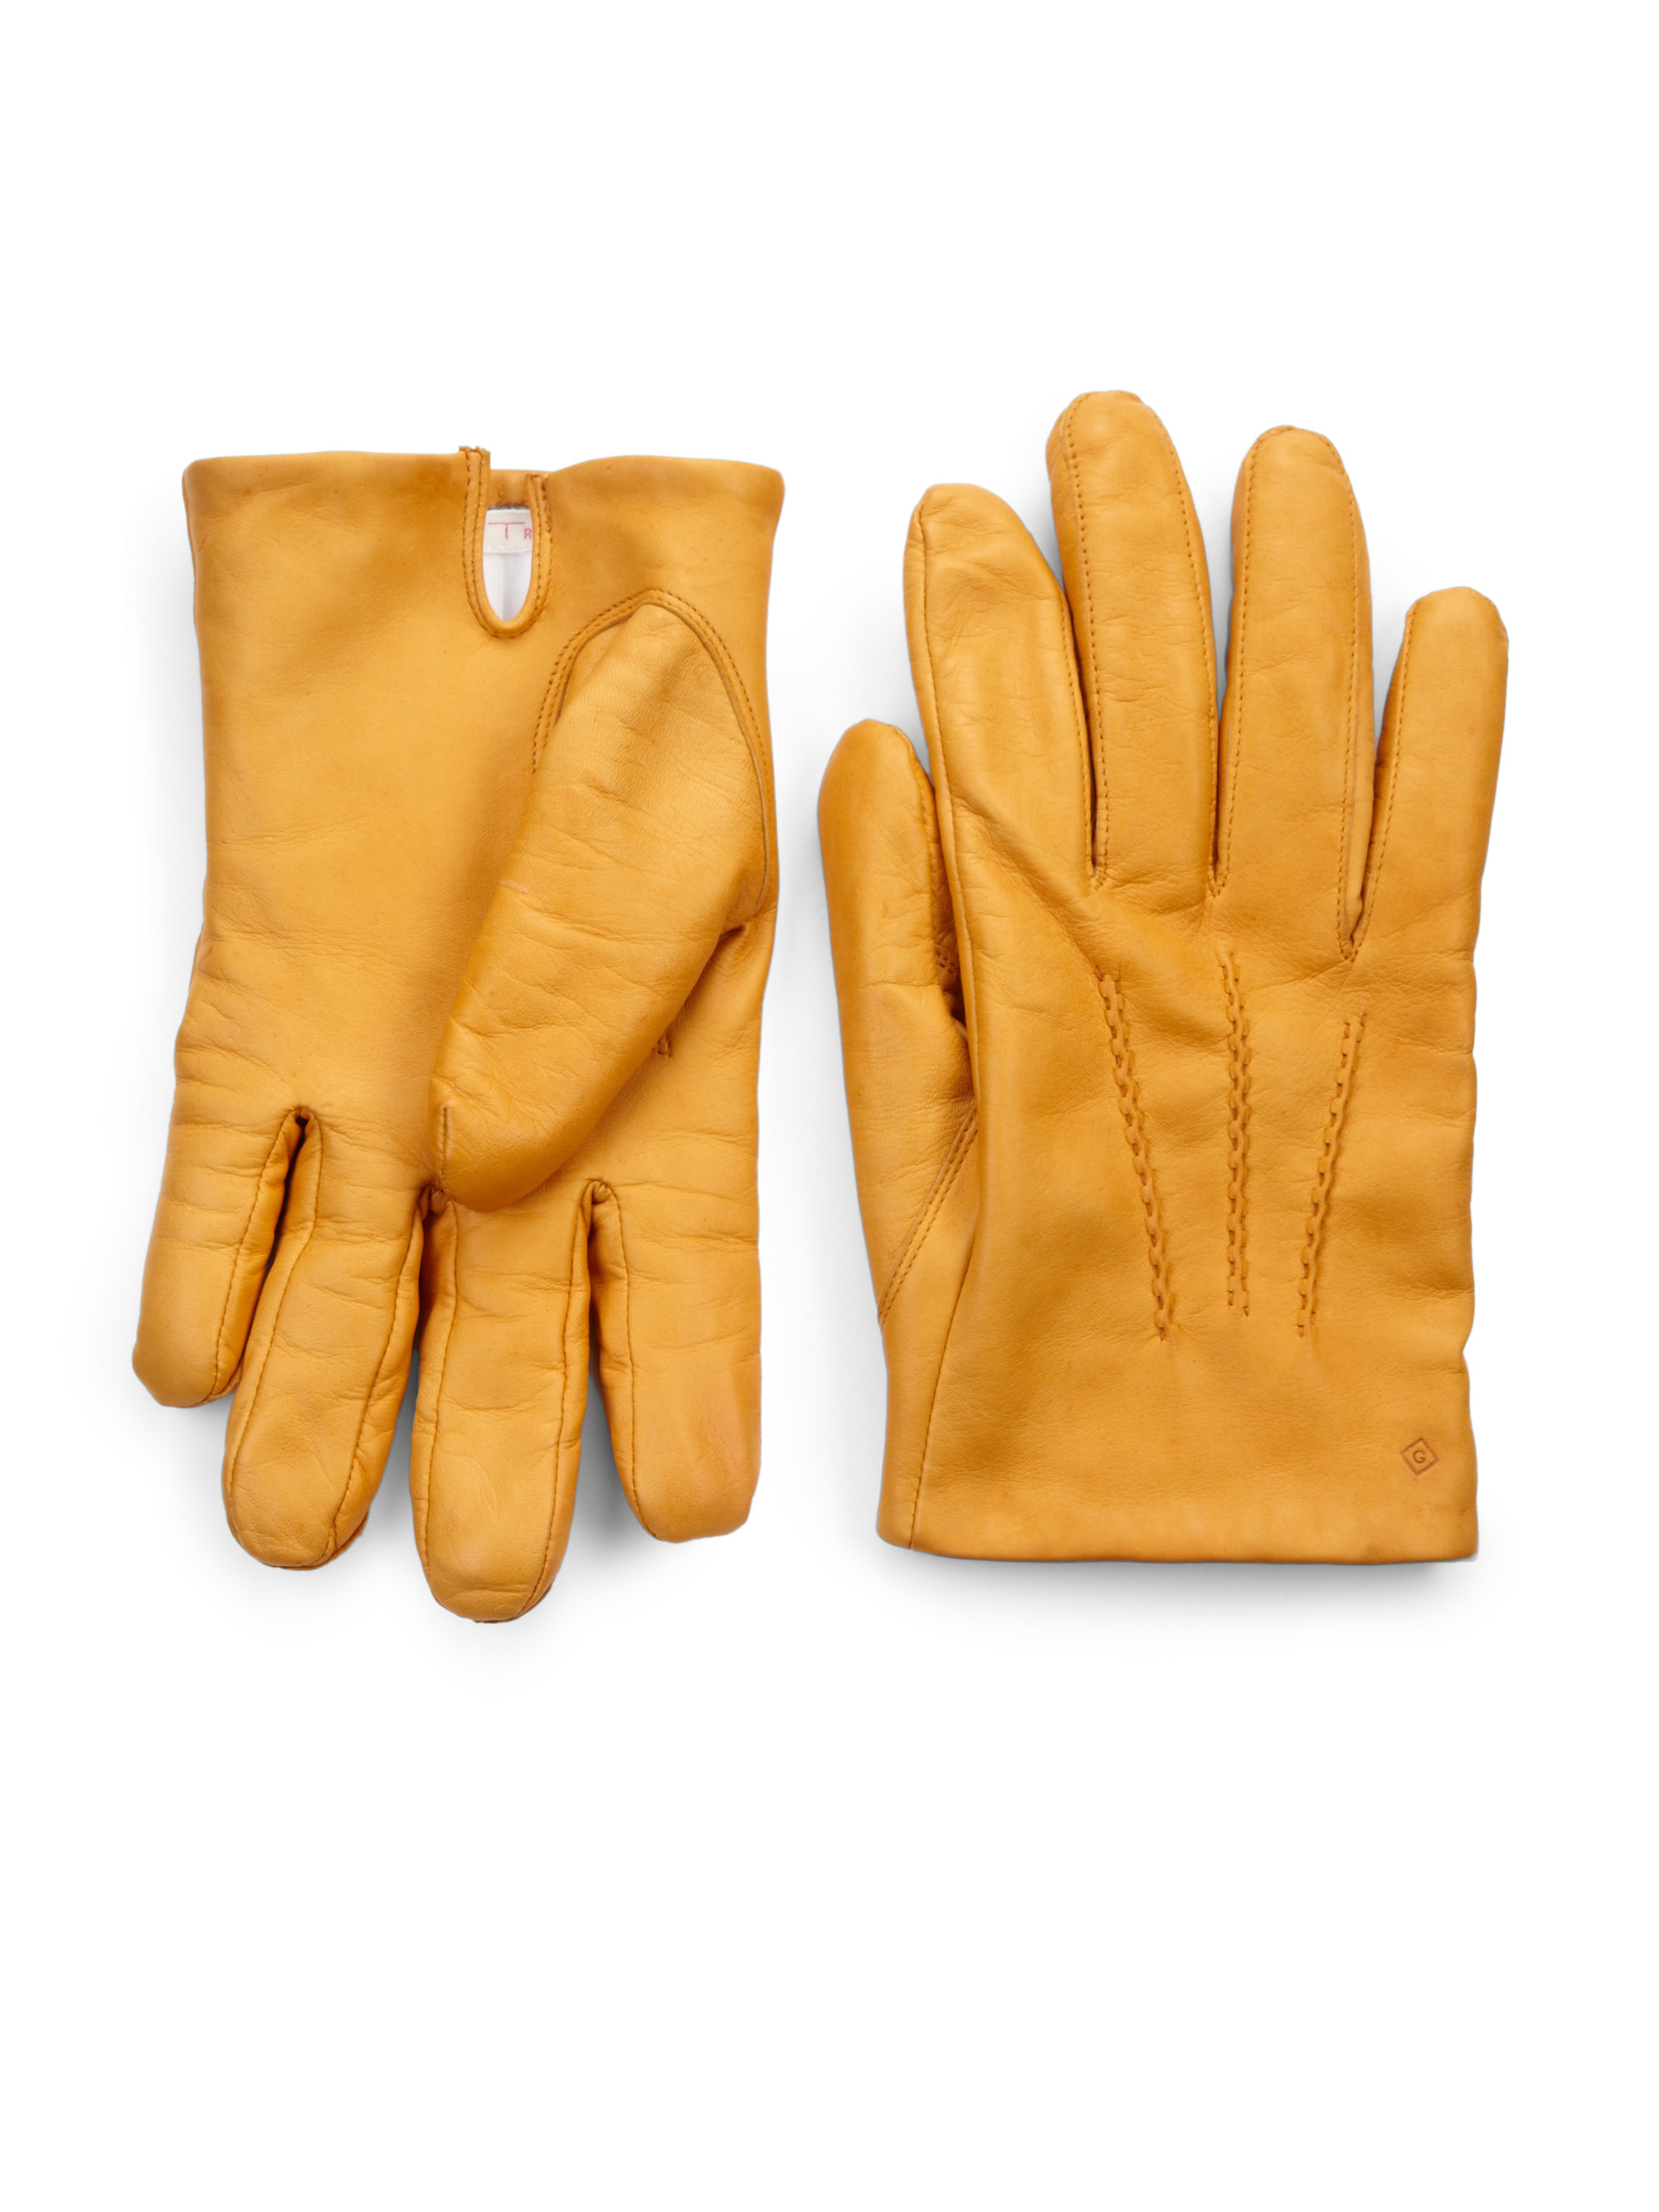 Gant mens leather gloves - Gallery Previously Sold At Saks Fifth Avenue Men S Leather Gloves